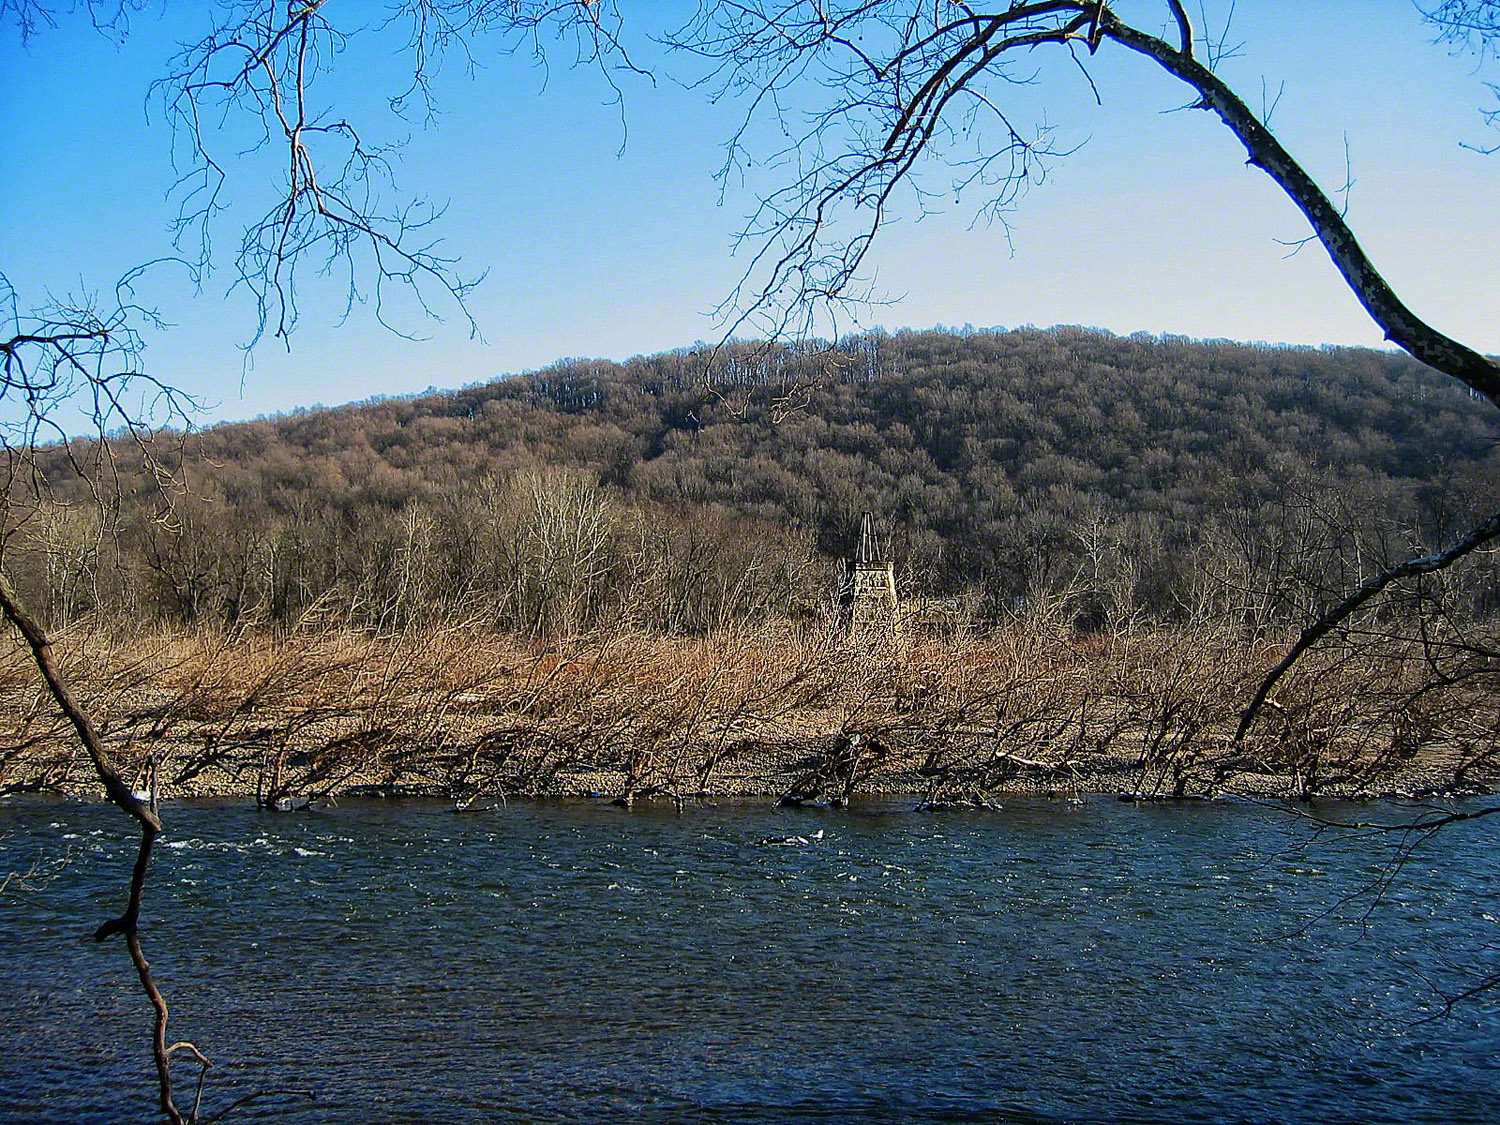 raubsville, pennsylvania, old sow island, island, delaware river, structure,, photo